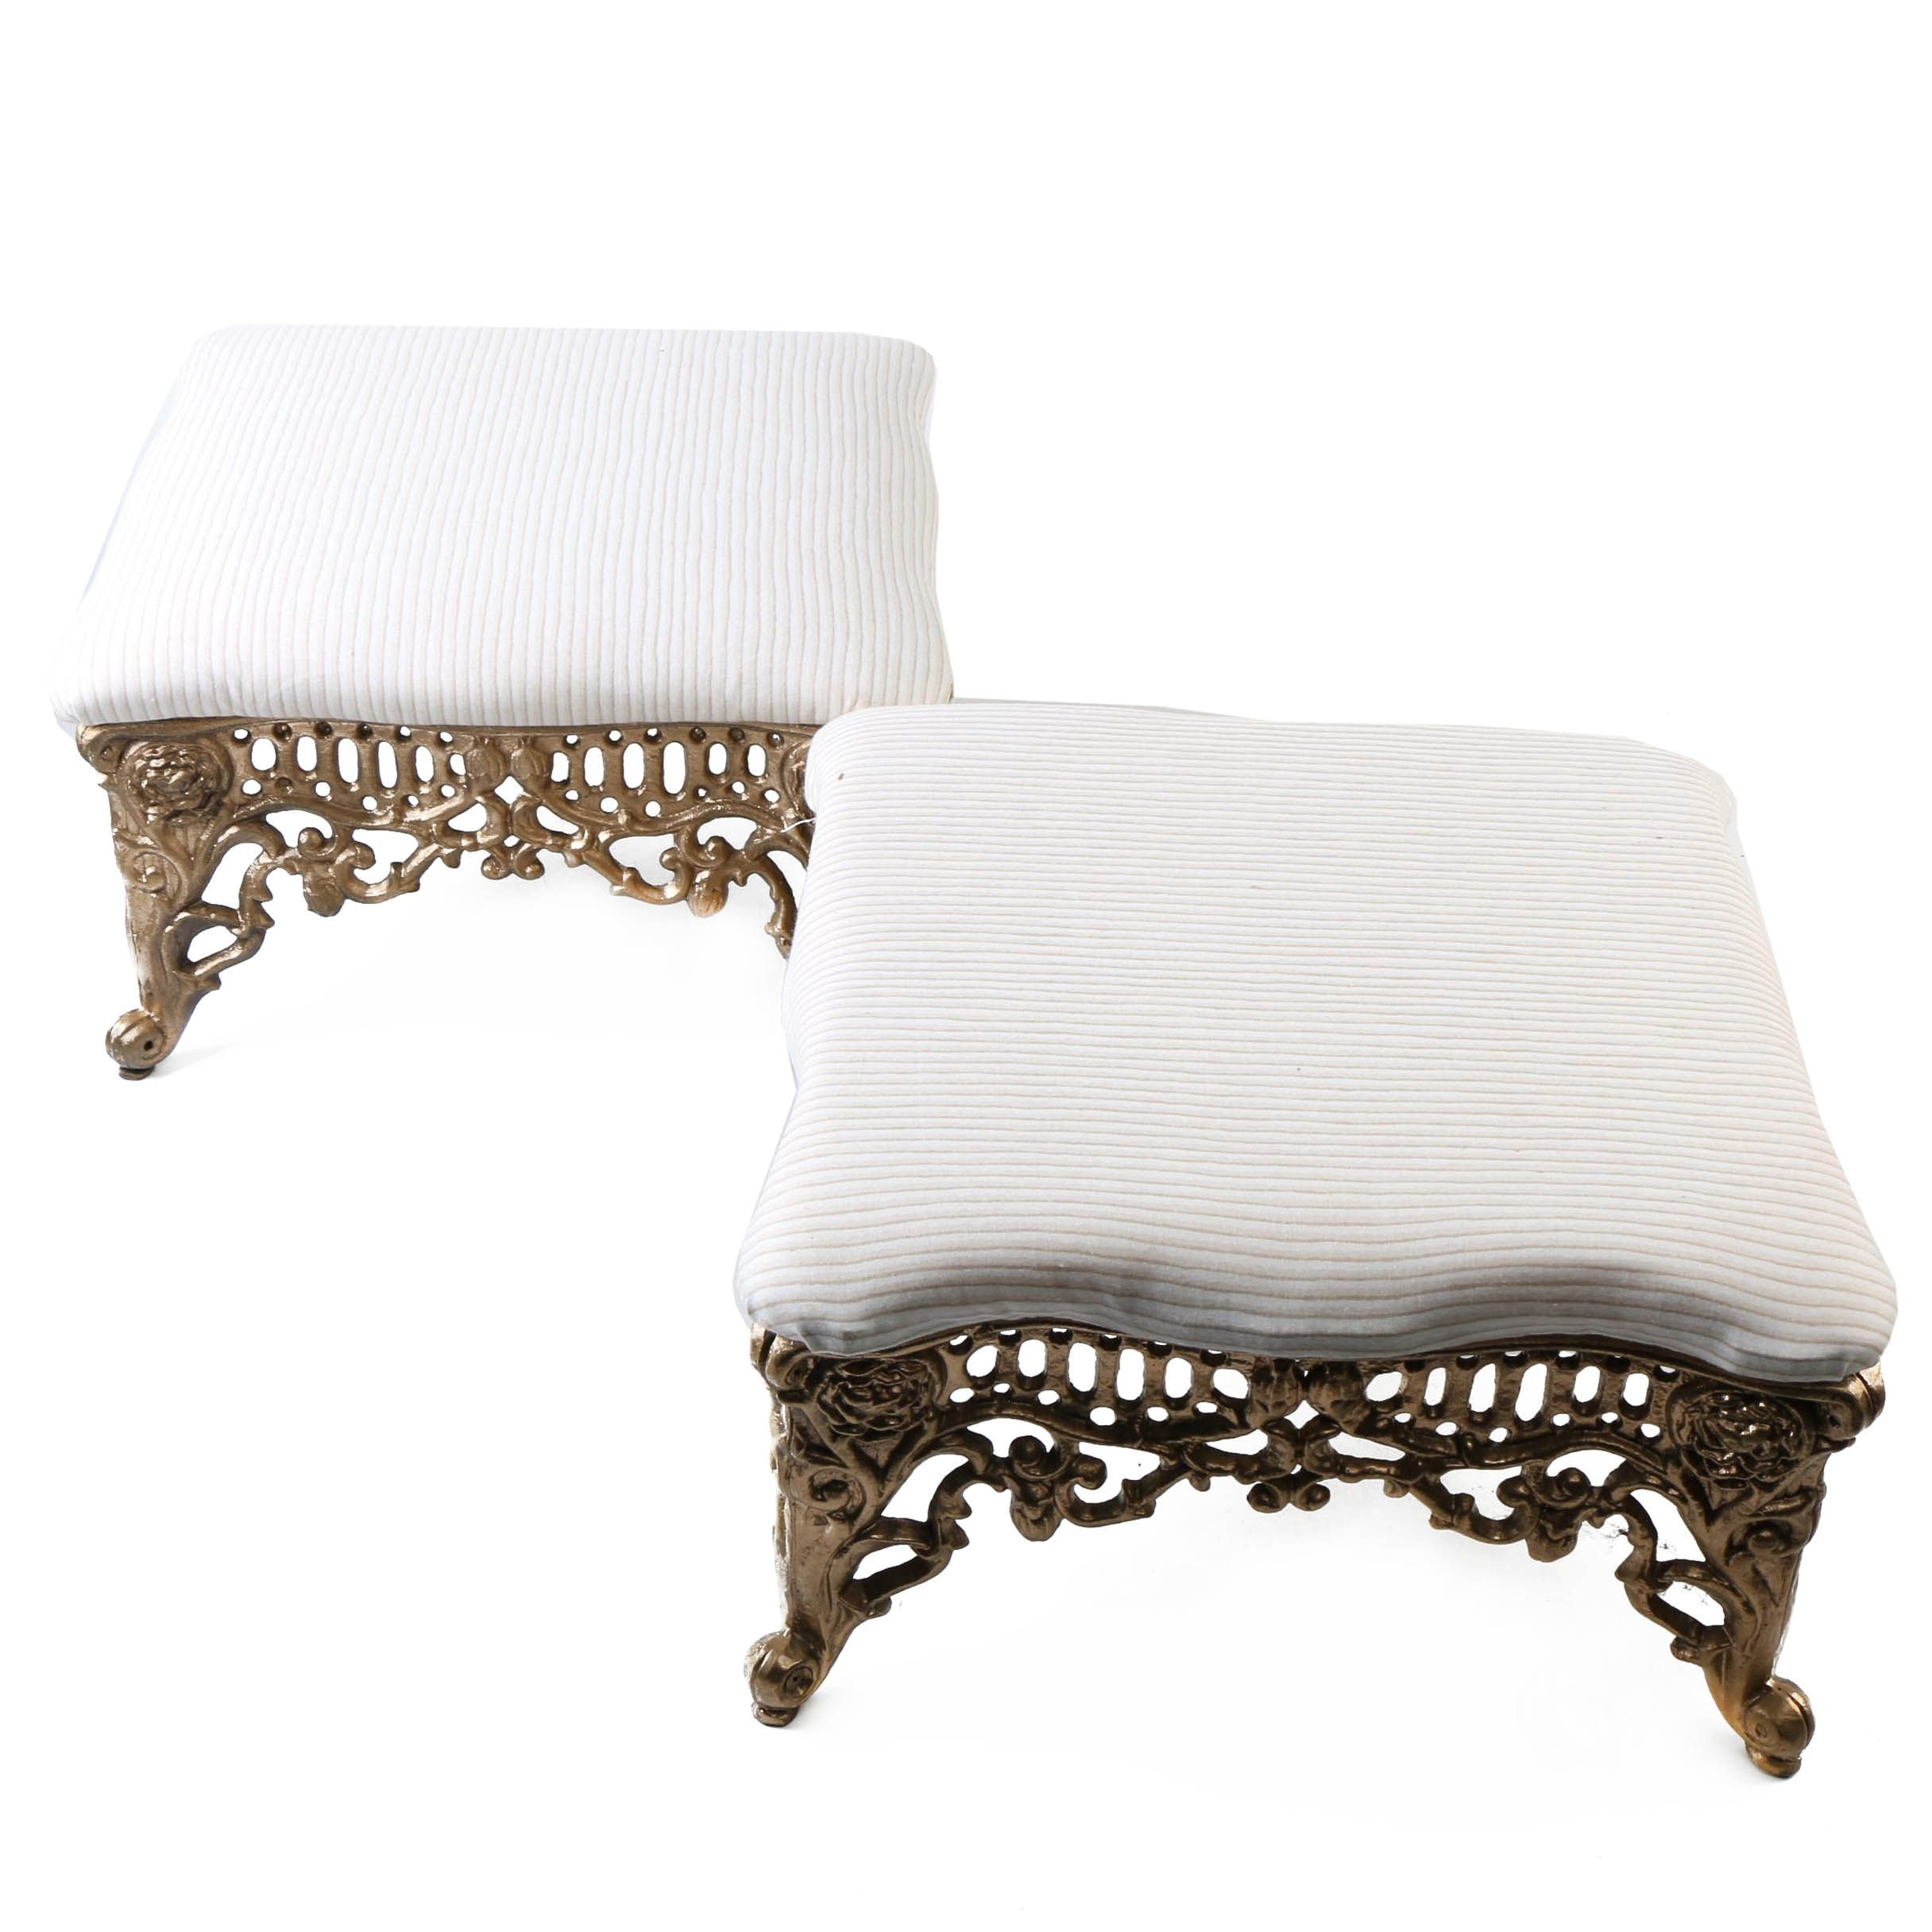 Pair of Cast Iron Gothic Style Footstools